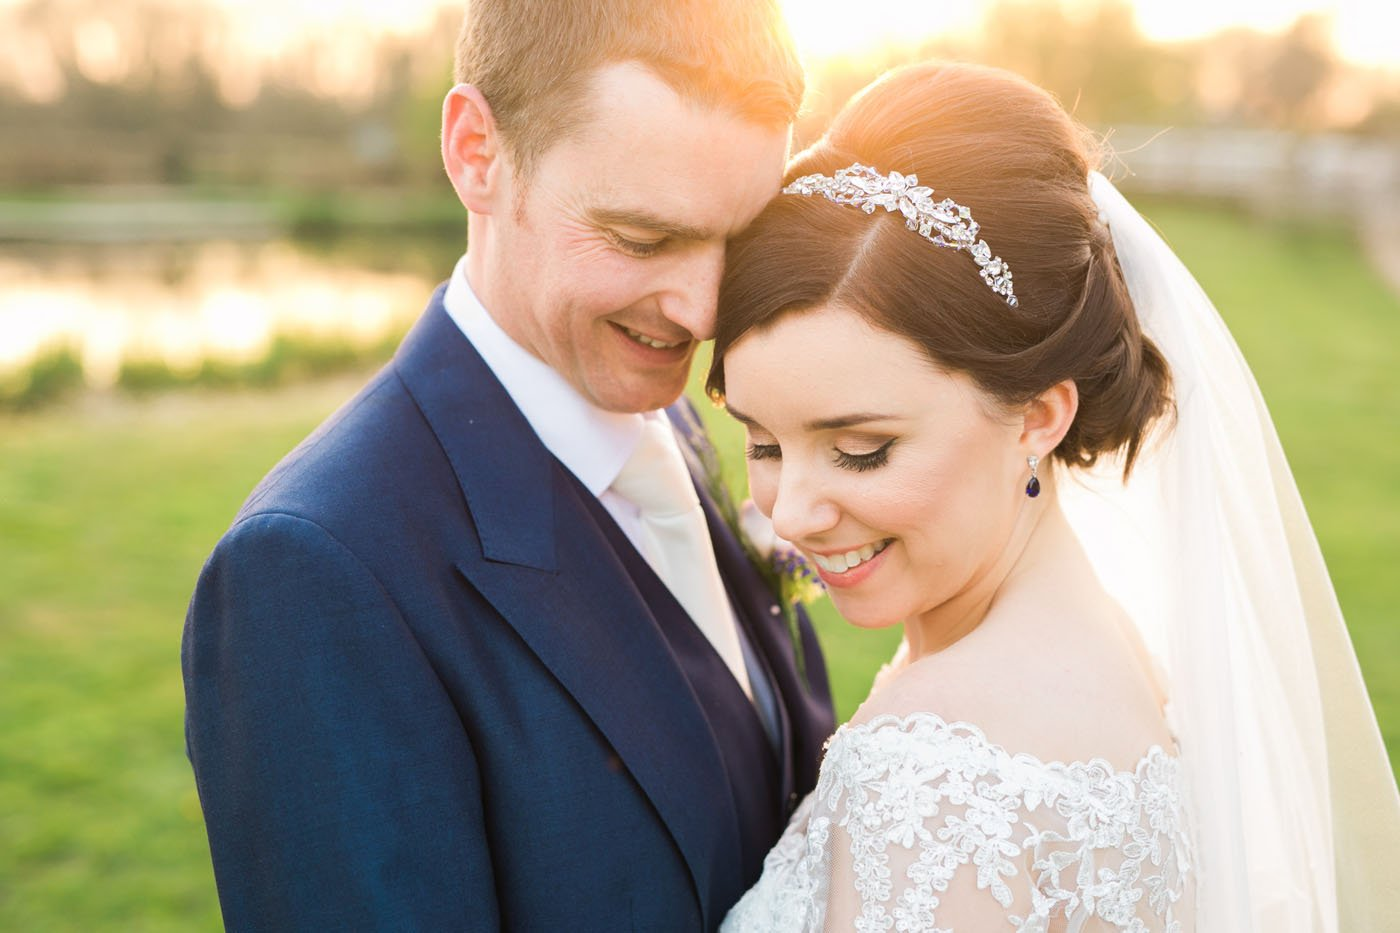 At Stone House Court, a bride and groom hug at sunset